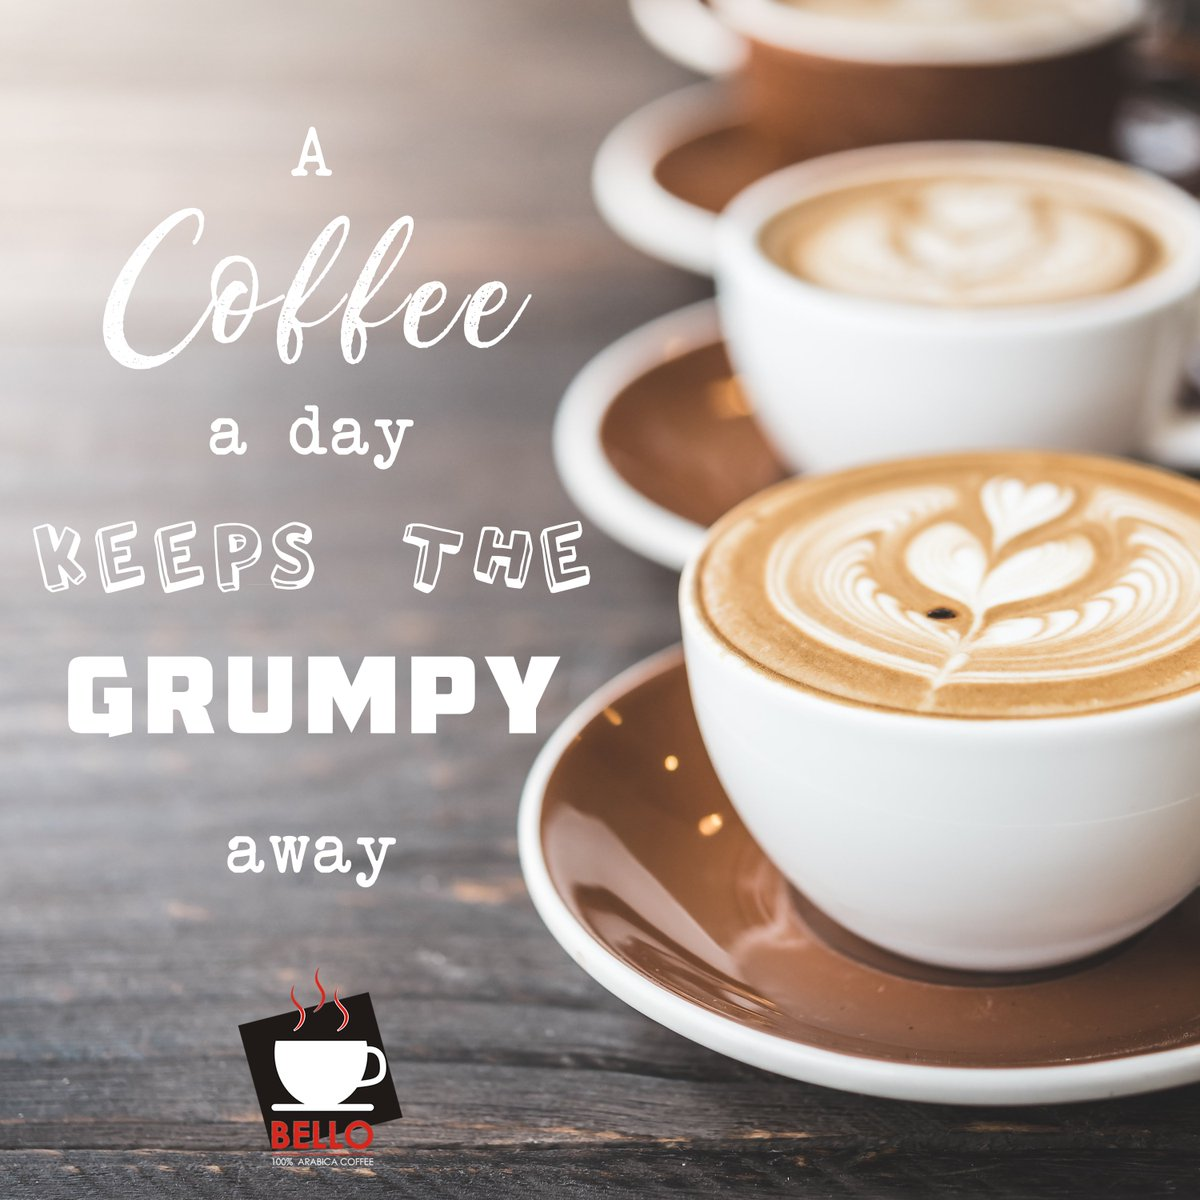 A coffee a day keeps the grumpy away!  Download the Del Forno app, available on Android & Apple and get ordering. Del Forno stores deliver.  Read up more on Bello Coffee: http://delforno.co.za/bello-coffee.html…  #BelloCoffee #DelForno #LoveForCoffee #coffee #coffeetime #coffeelover #caffeinepic.twitter.com/N4ap2gklLN